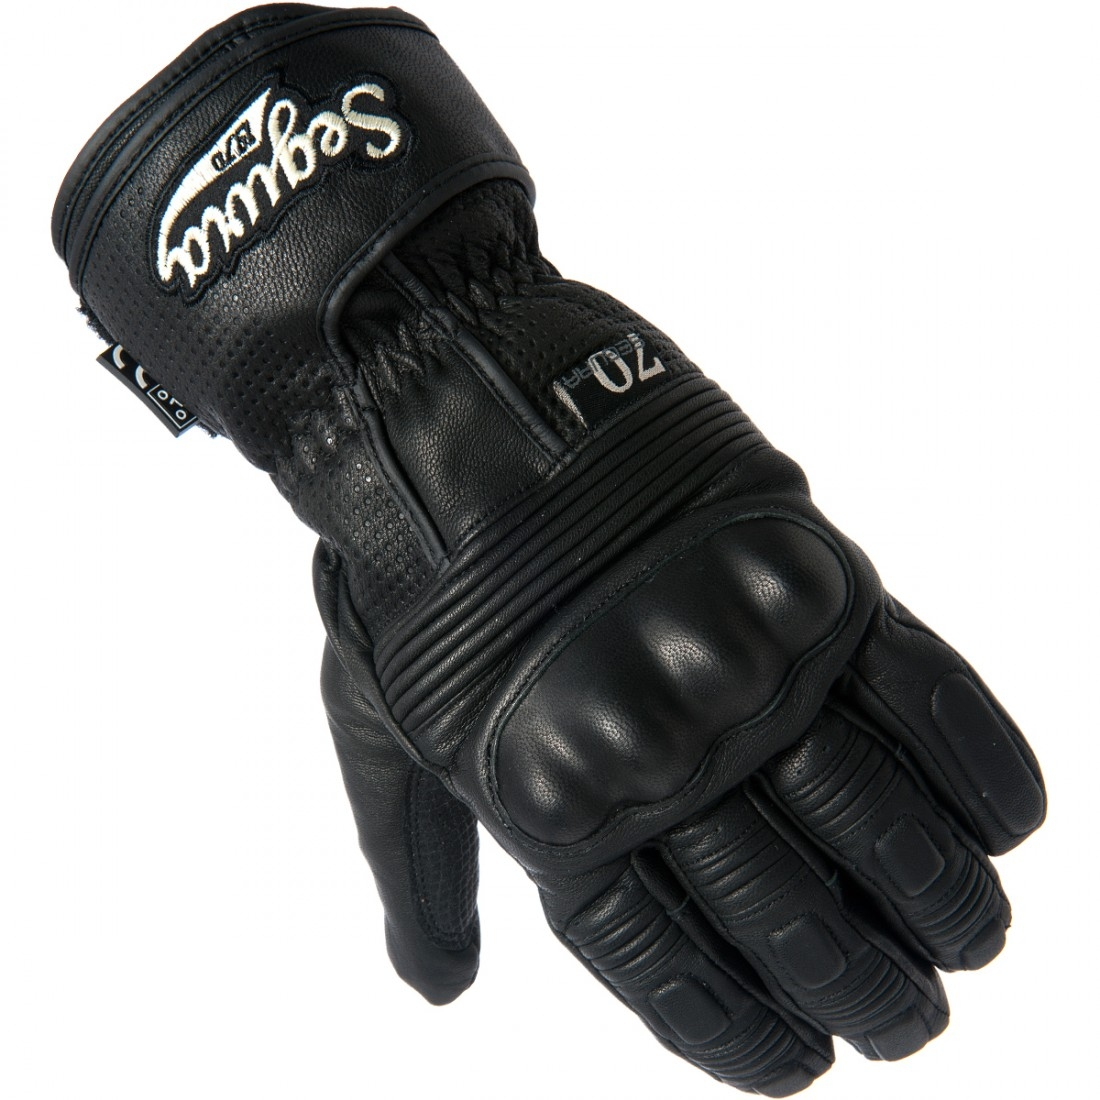 Guantes Moto Piel Marshall Segura Cafe Racer Collection